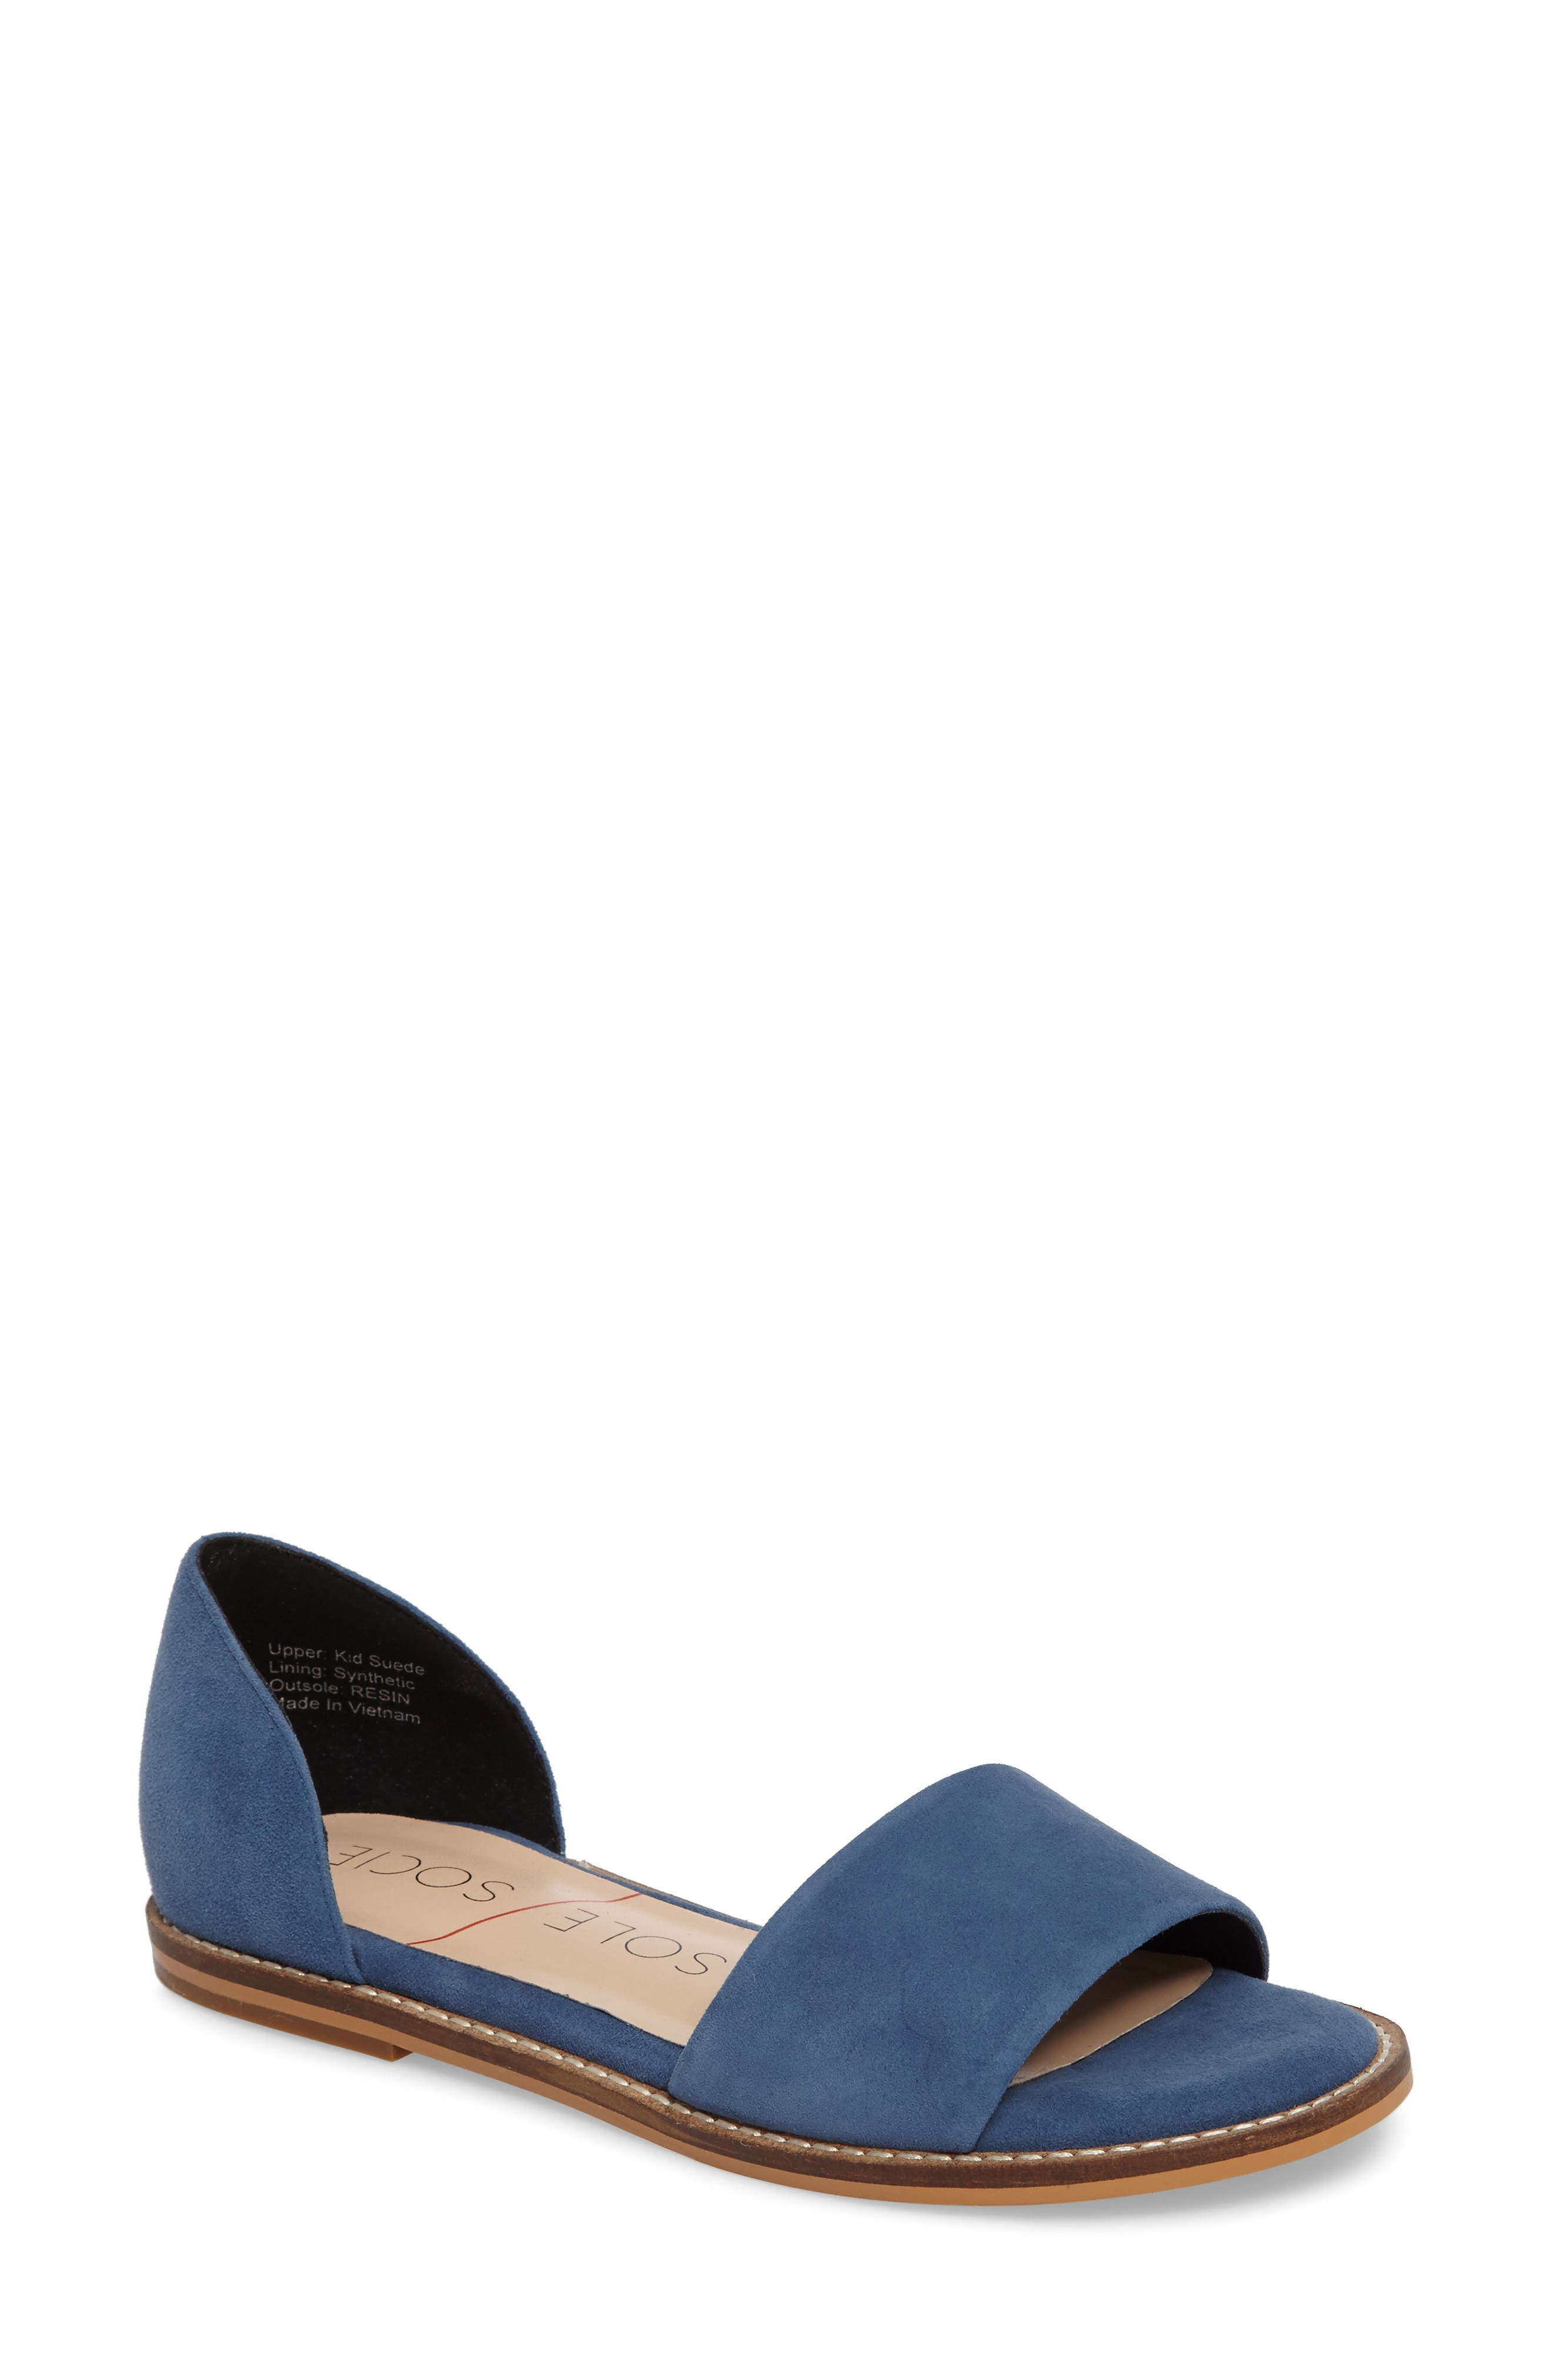 Sole Society 'Harlow' Flat d'Orsay Sandal (Women)